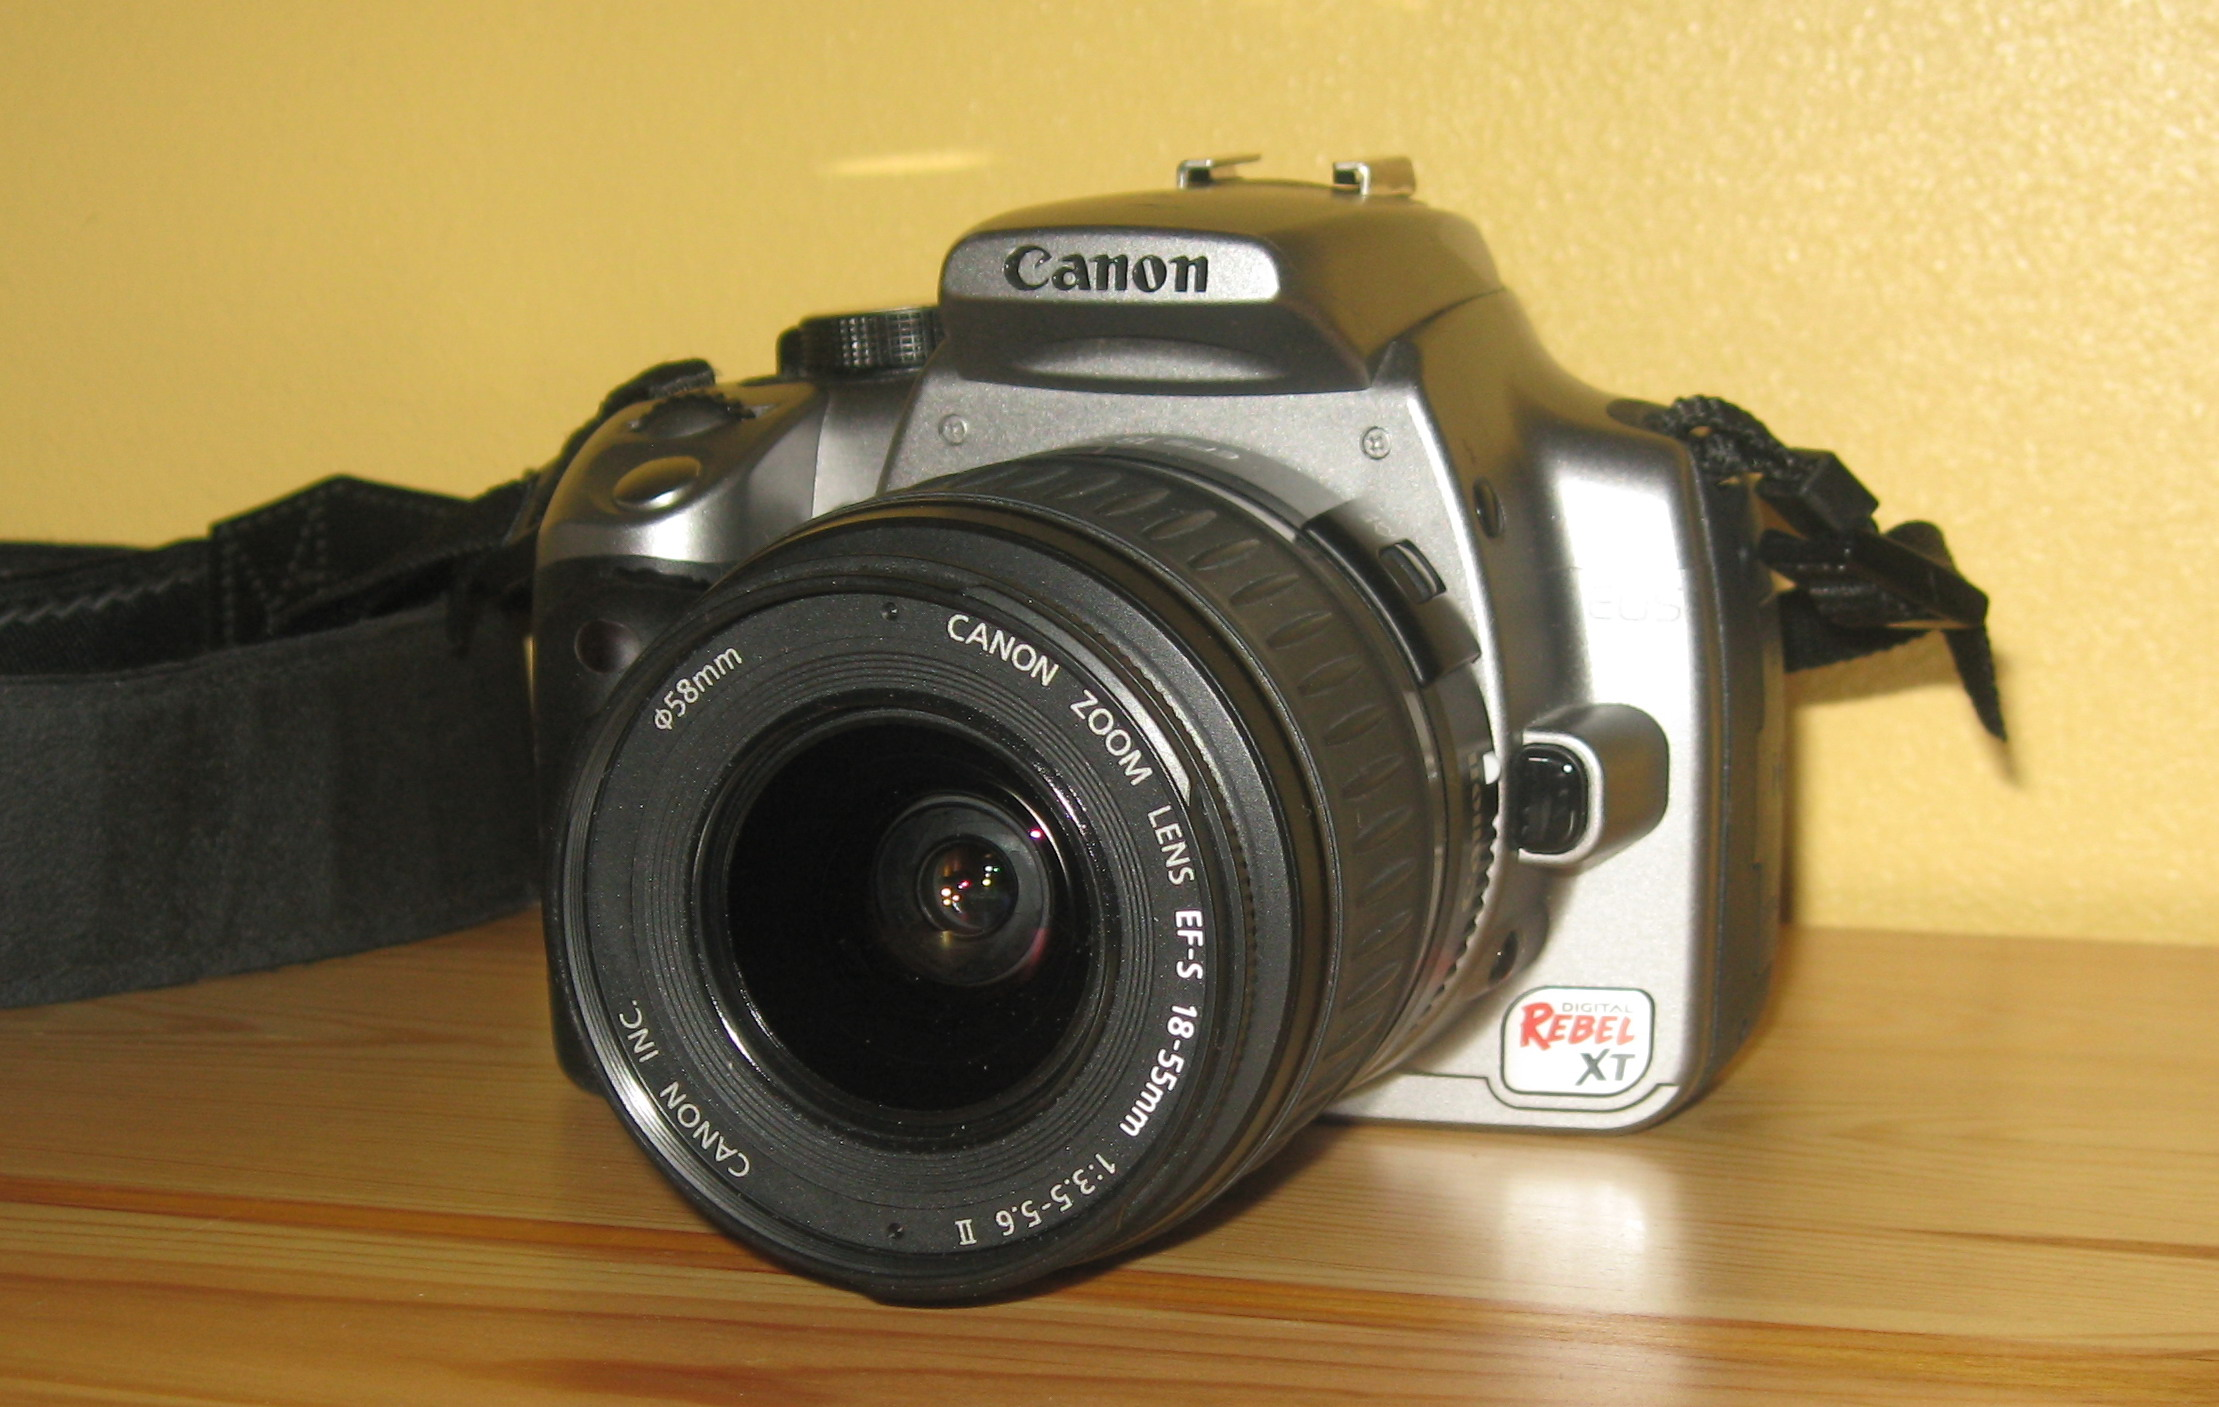 File:Canon EOS Digital Rebel XT 350D front kit lens jpg